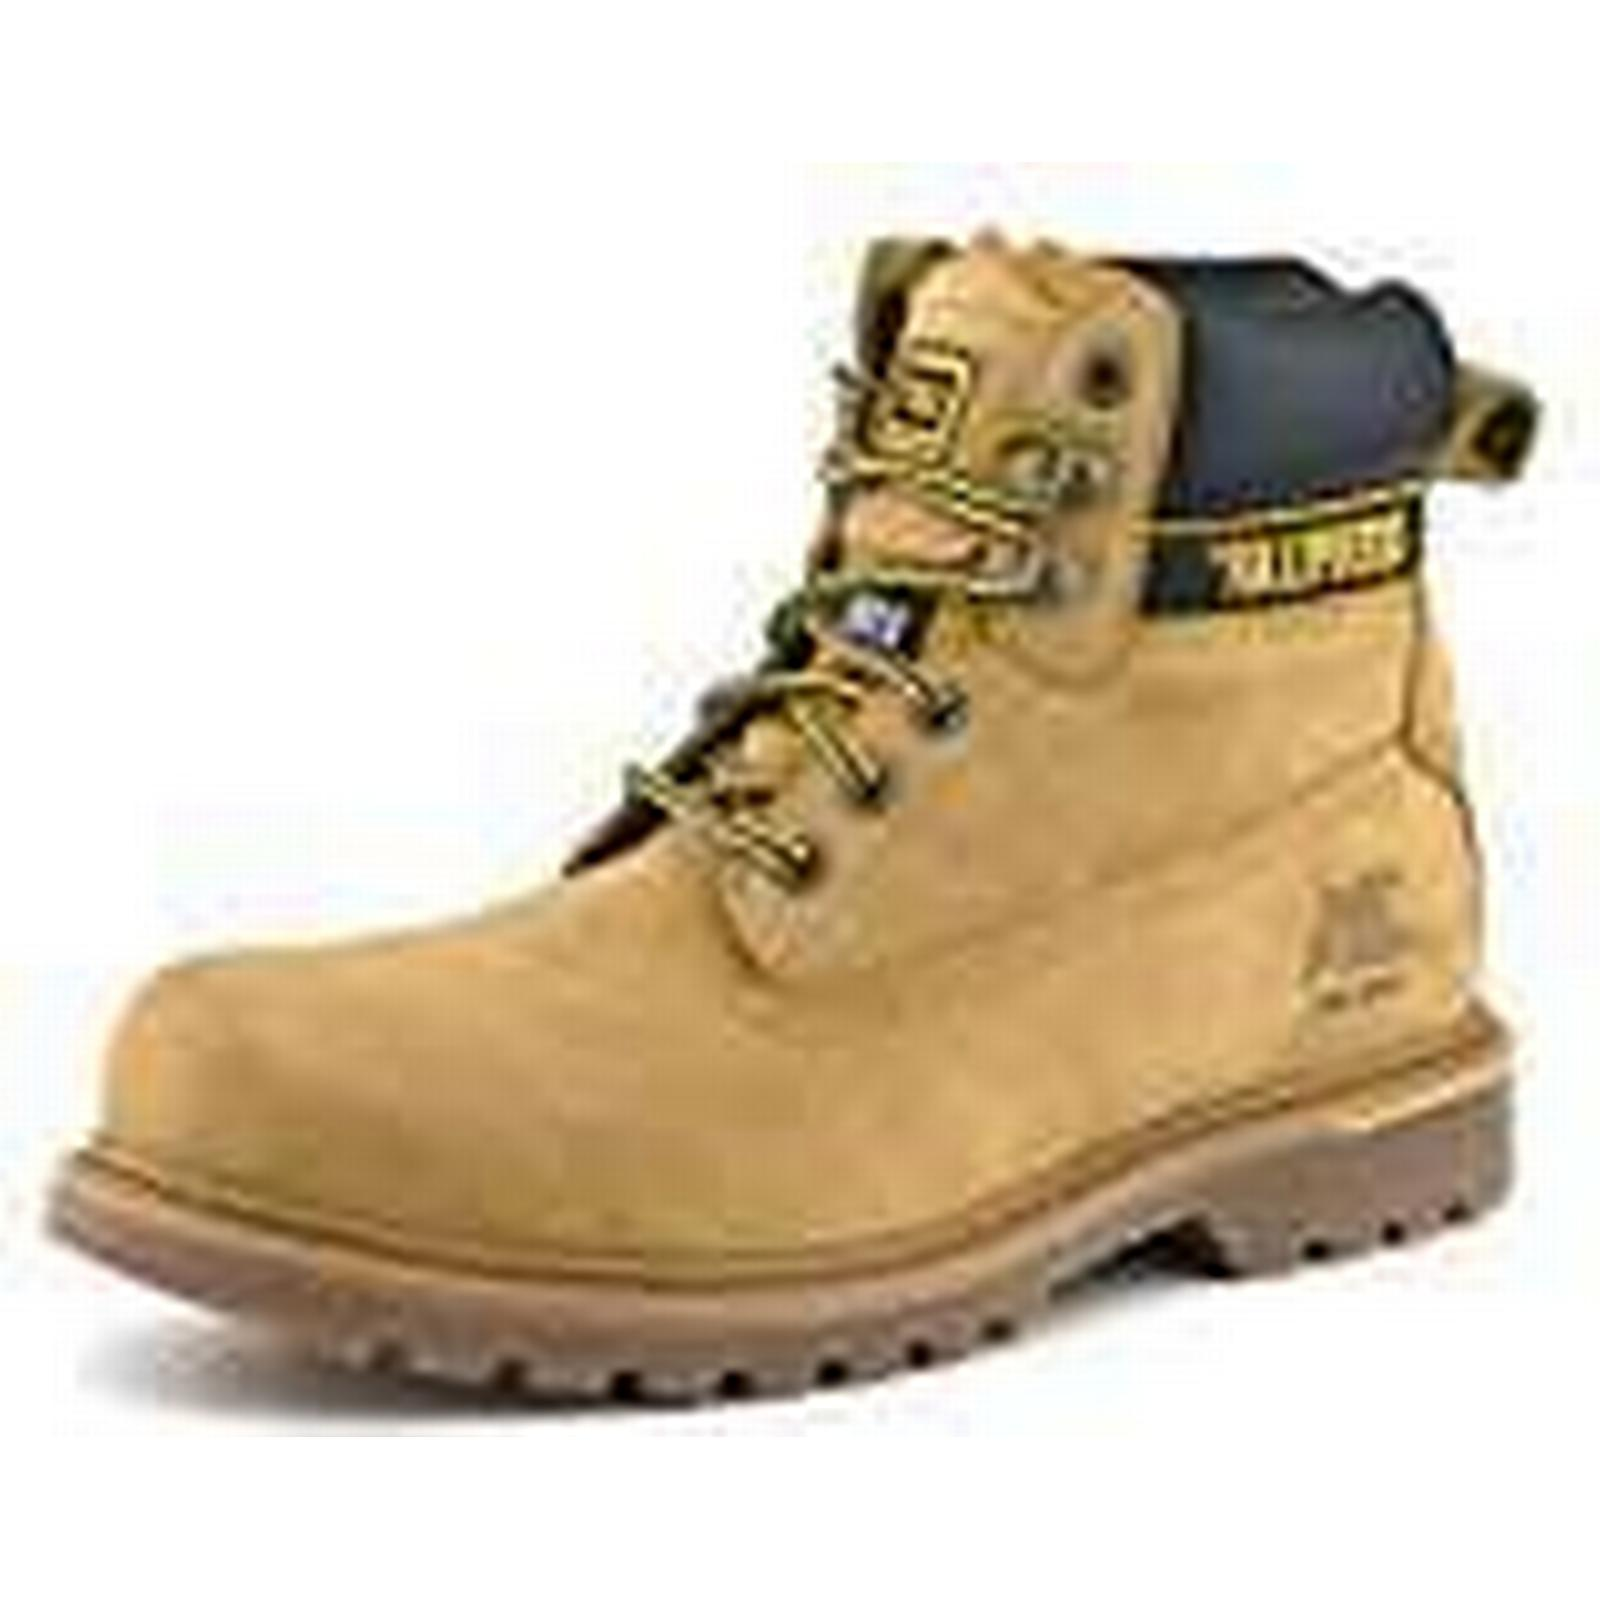 Briggs 7042HY060 Size Caterpillar Holton Safety Boot, Size 7042HY060 6, Honey ae852c